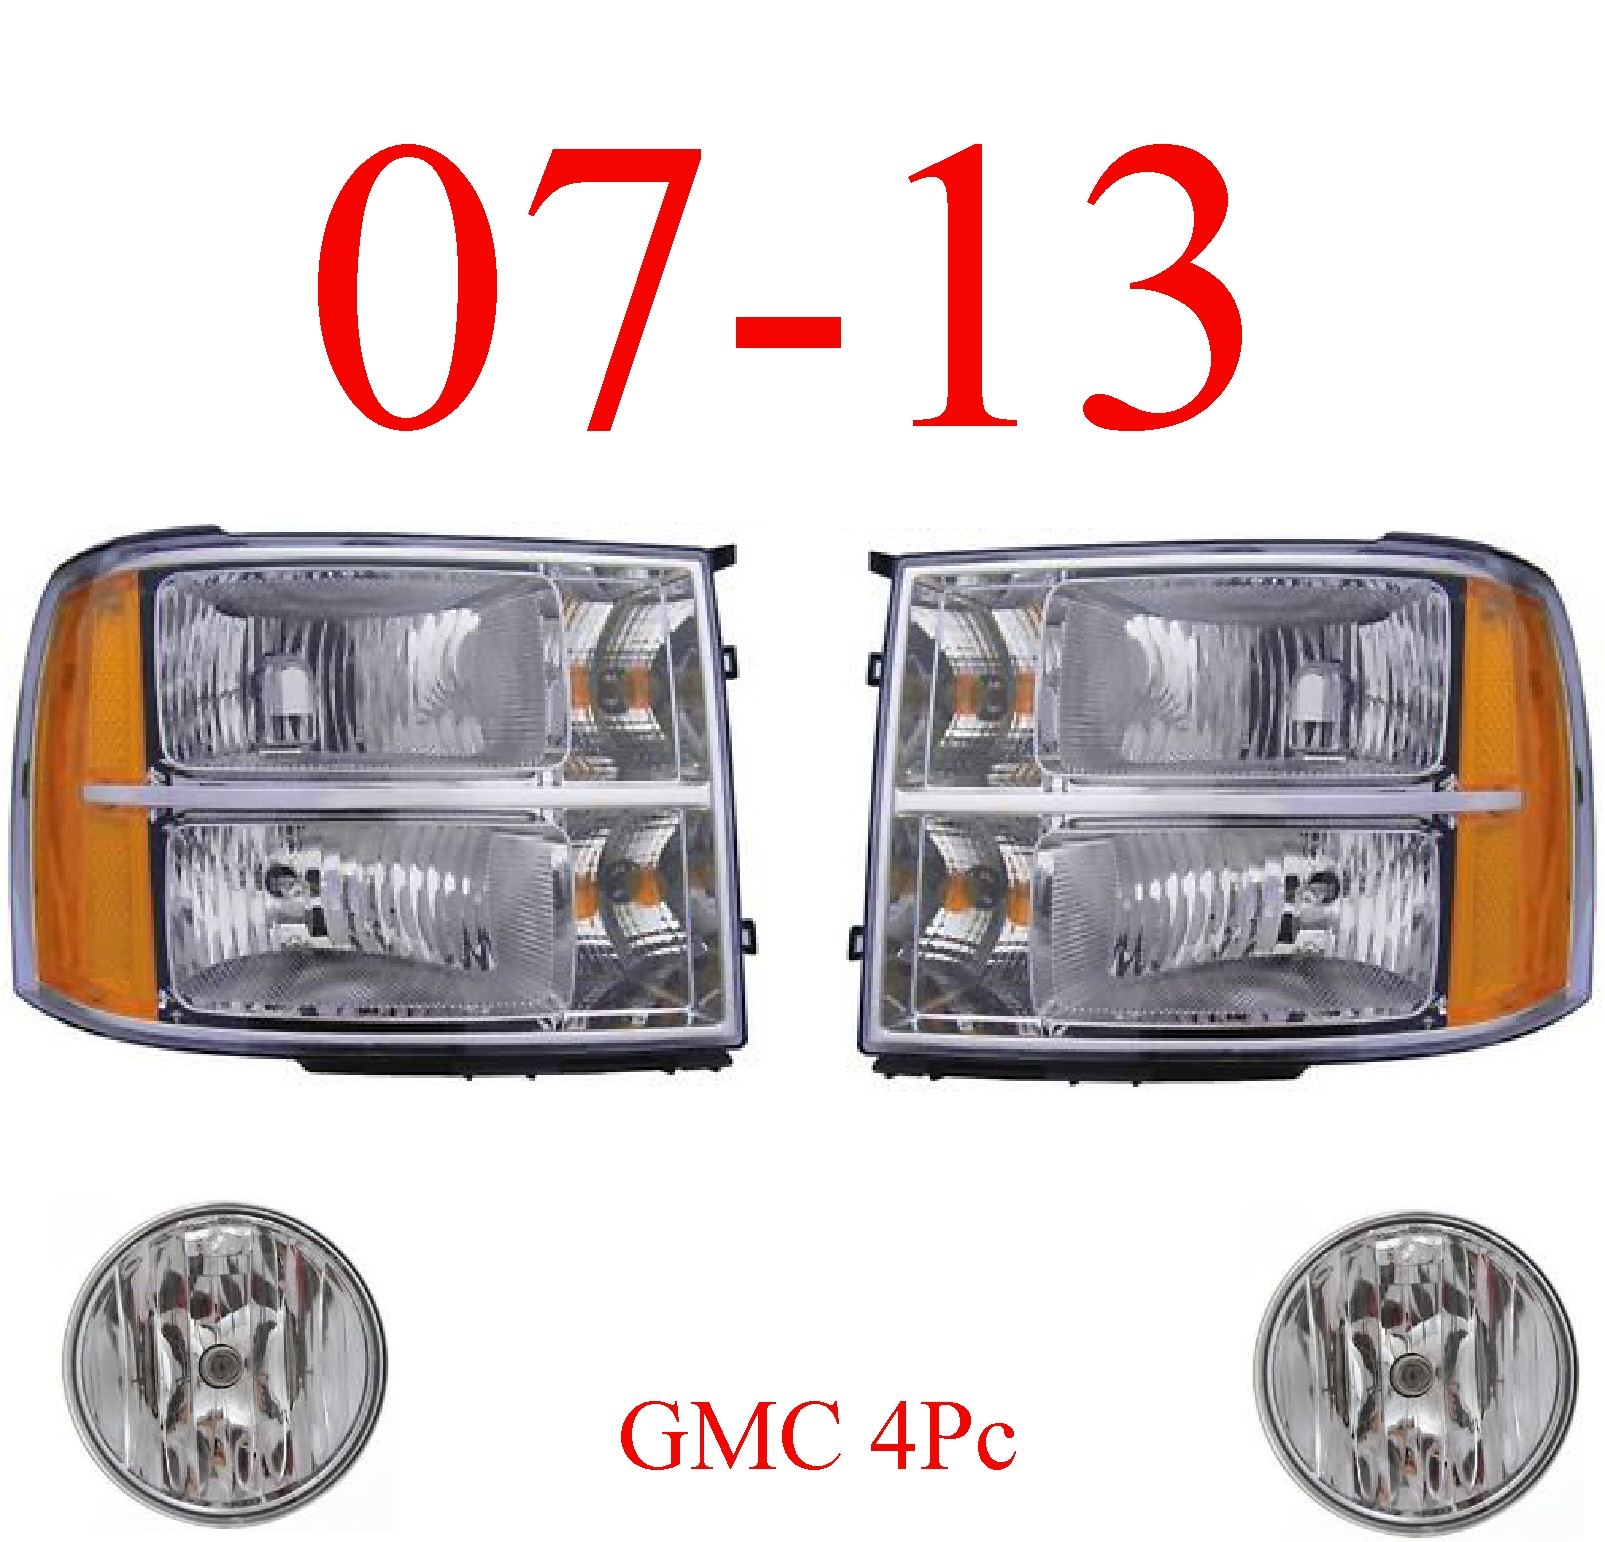 07-13 GMC 4Pc Head Light & Fog Light Kit